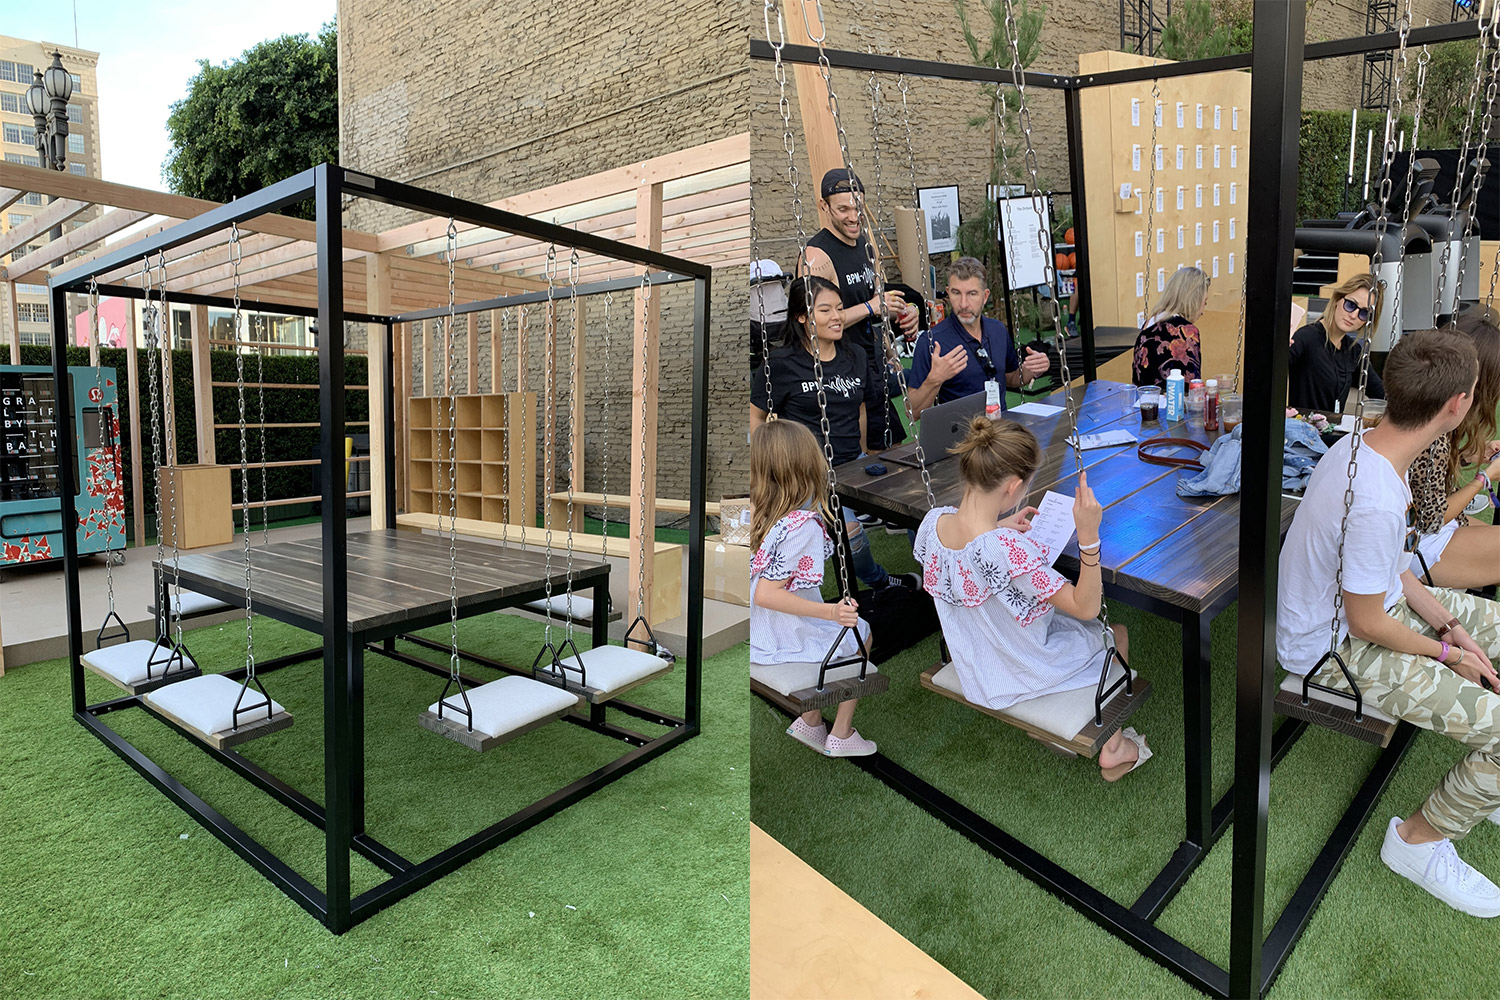 Swing Tables Let You Swing While You Eat or Have a Meeting